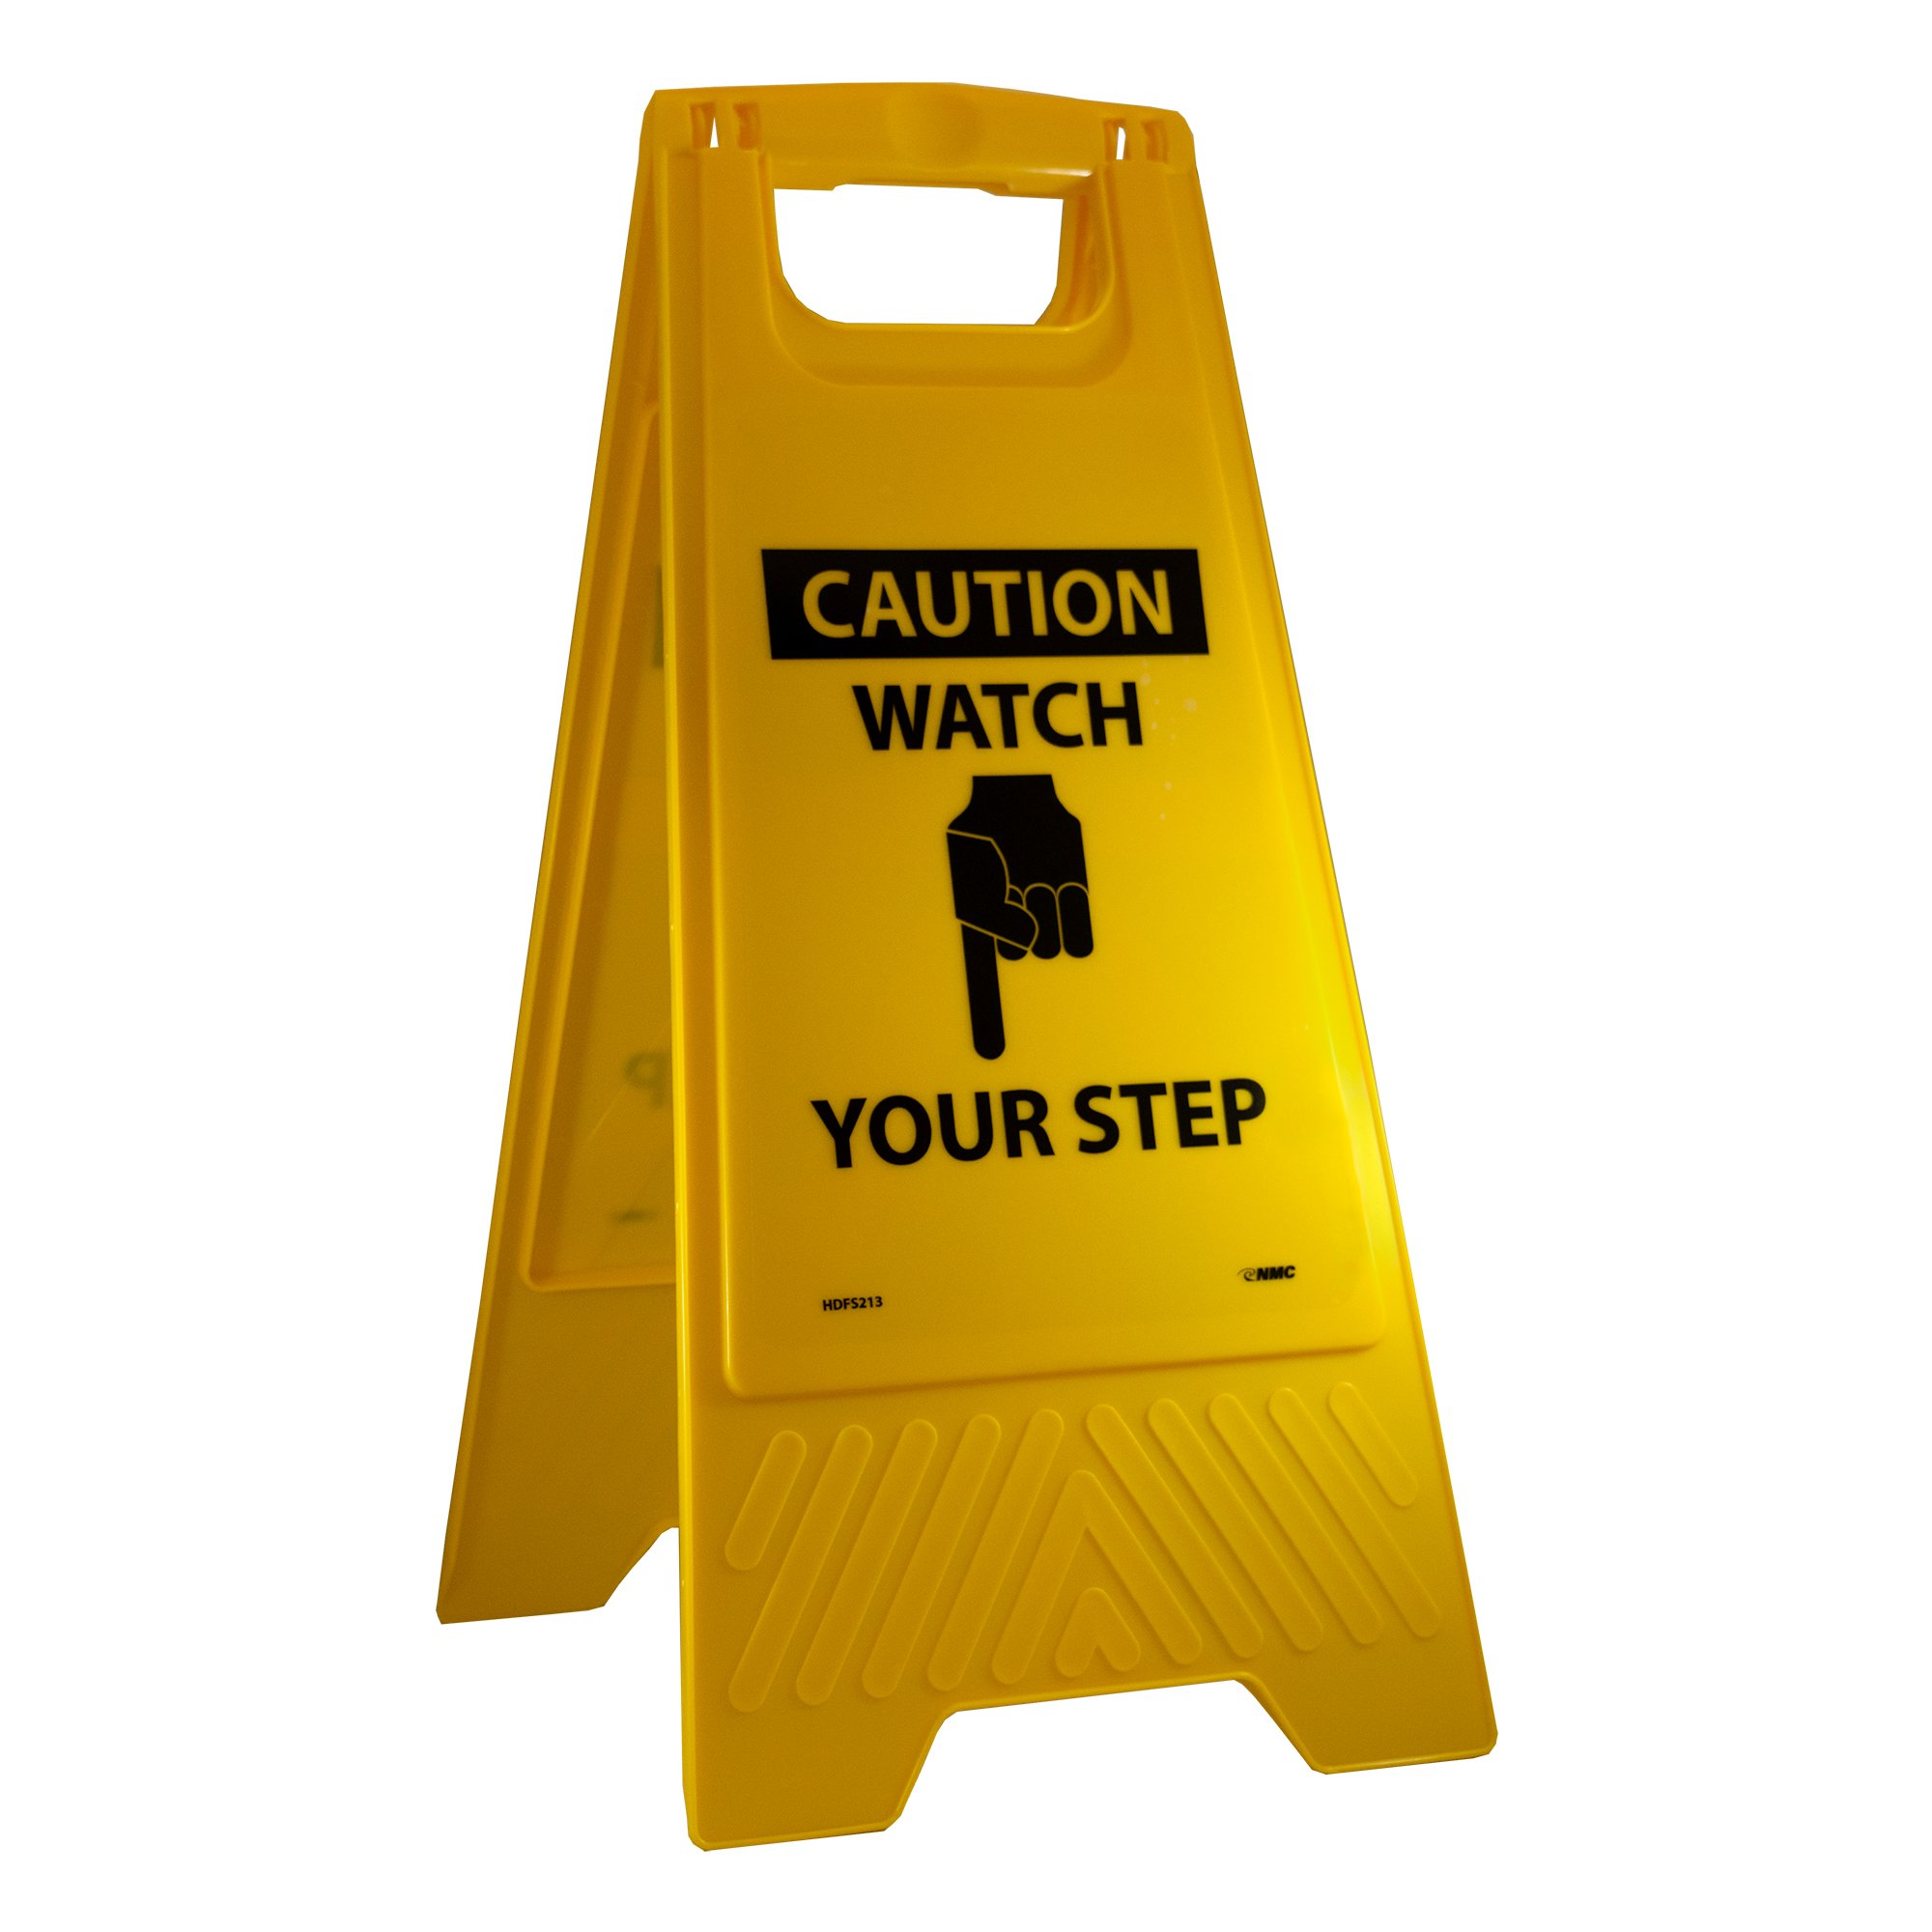 NMC HDFS213 Heavy Duty Floor Stand Sign, Legend ''CAUTION - WATCH YOUR STEP'' with Graphic, 10-3/4'' Length x 24-5/8'' Height, Black on Yellow